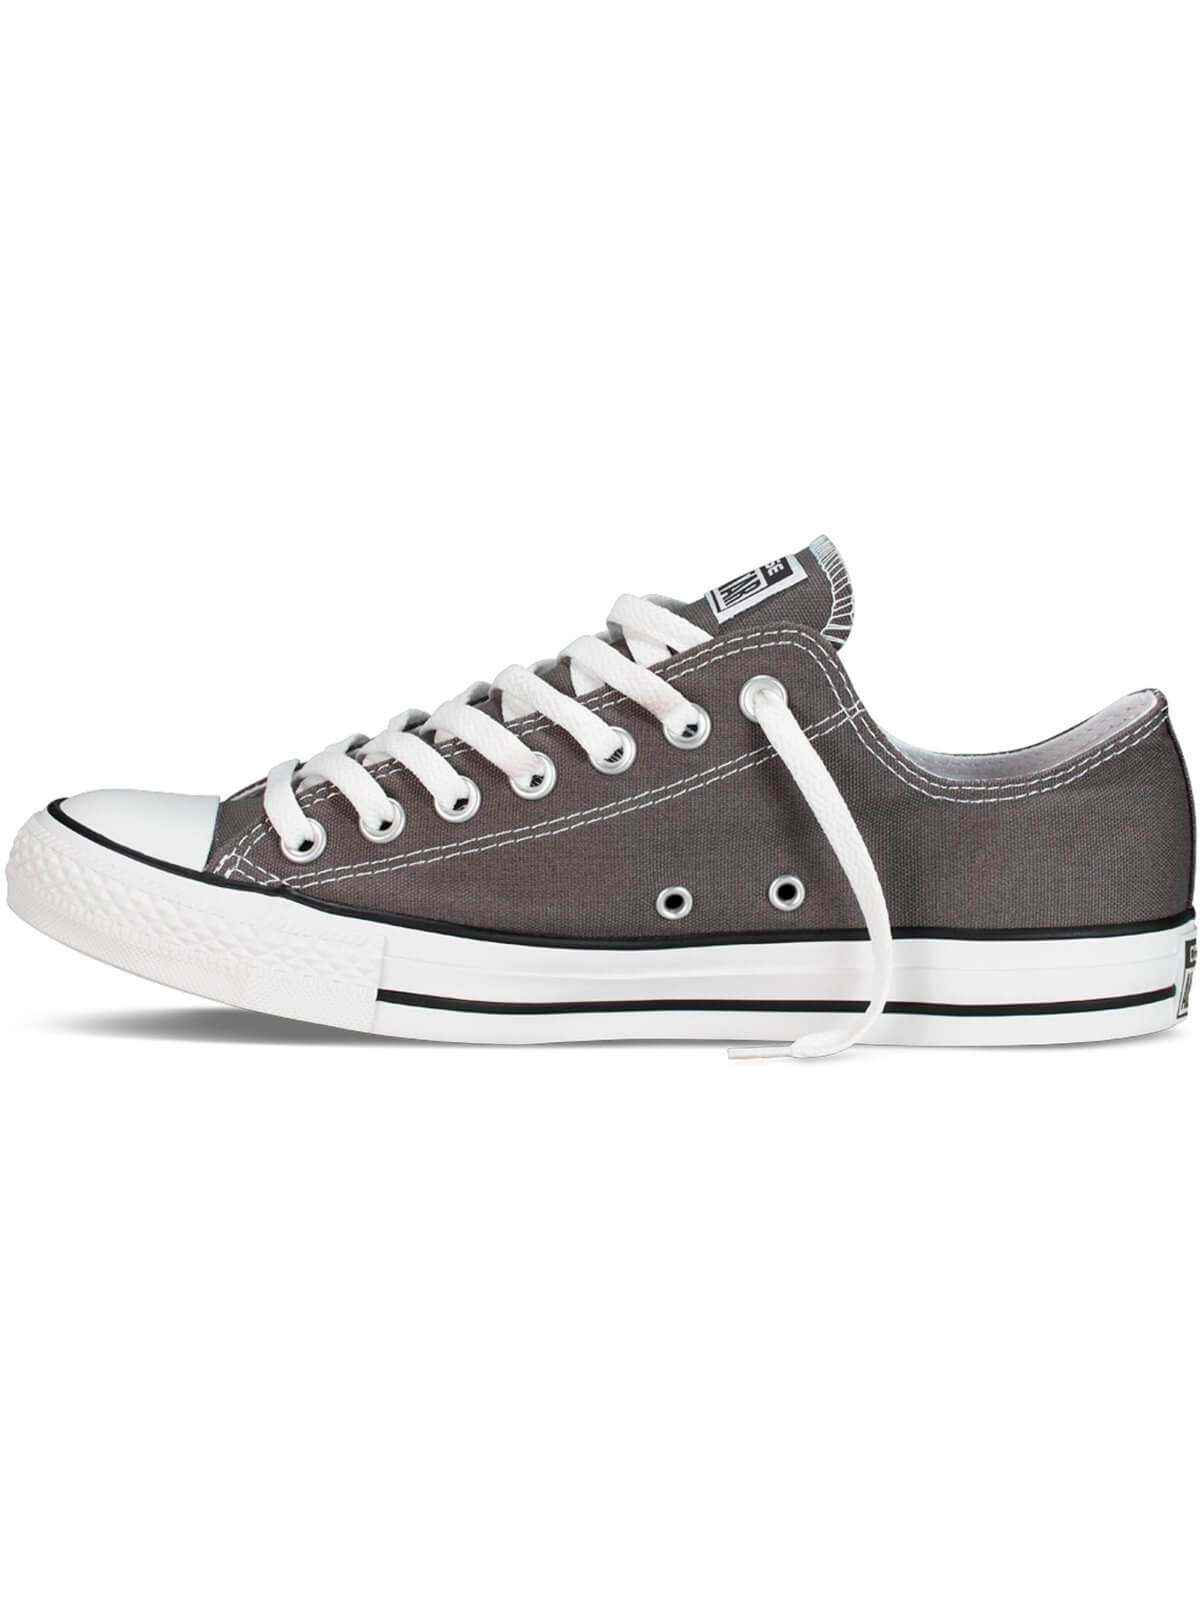 Converse All Star Unisex Chuck Taylor Low Top Trainers